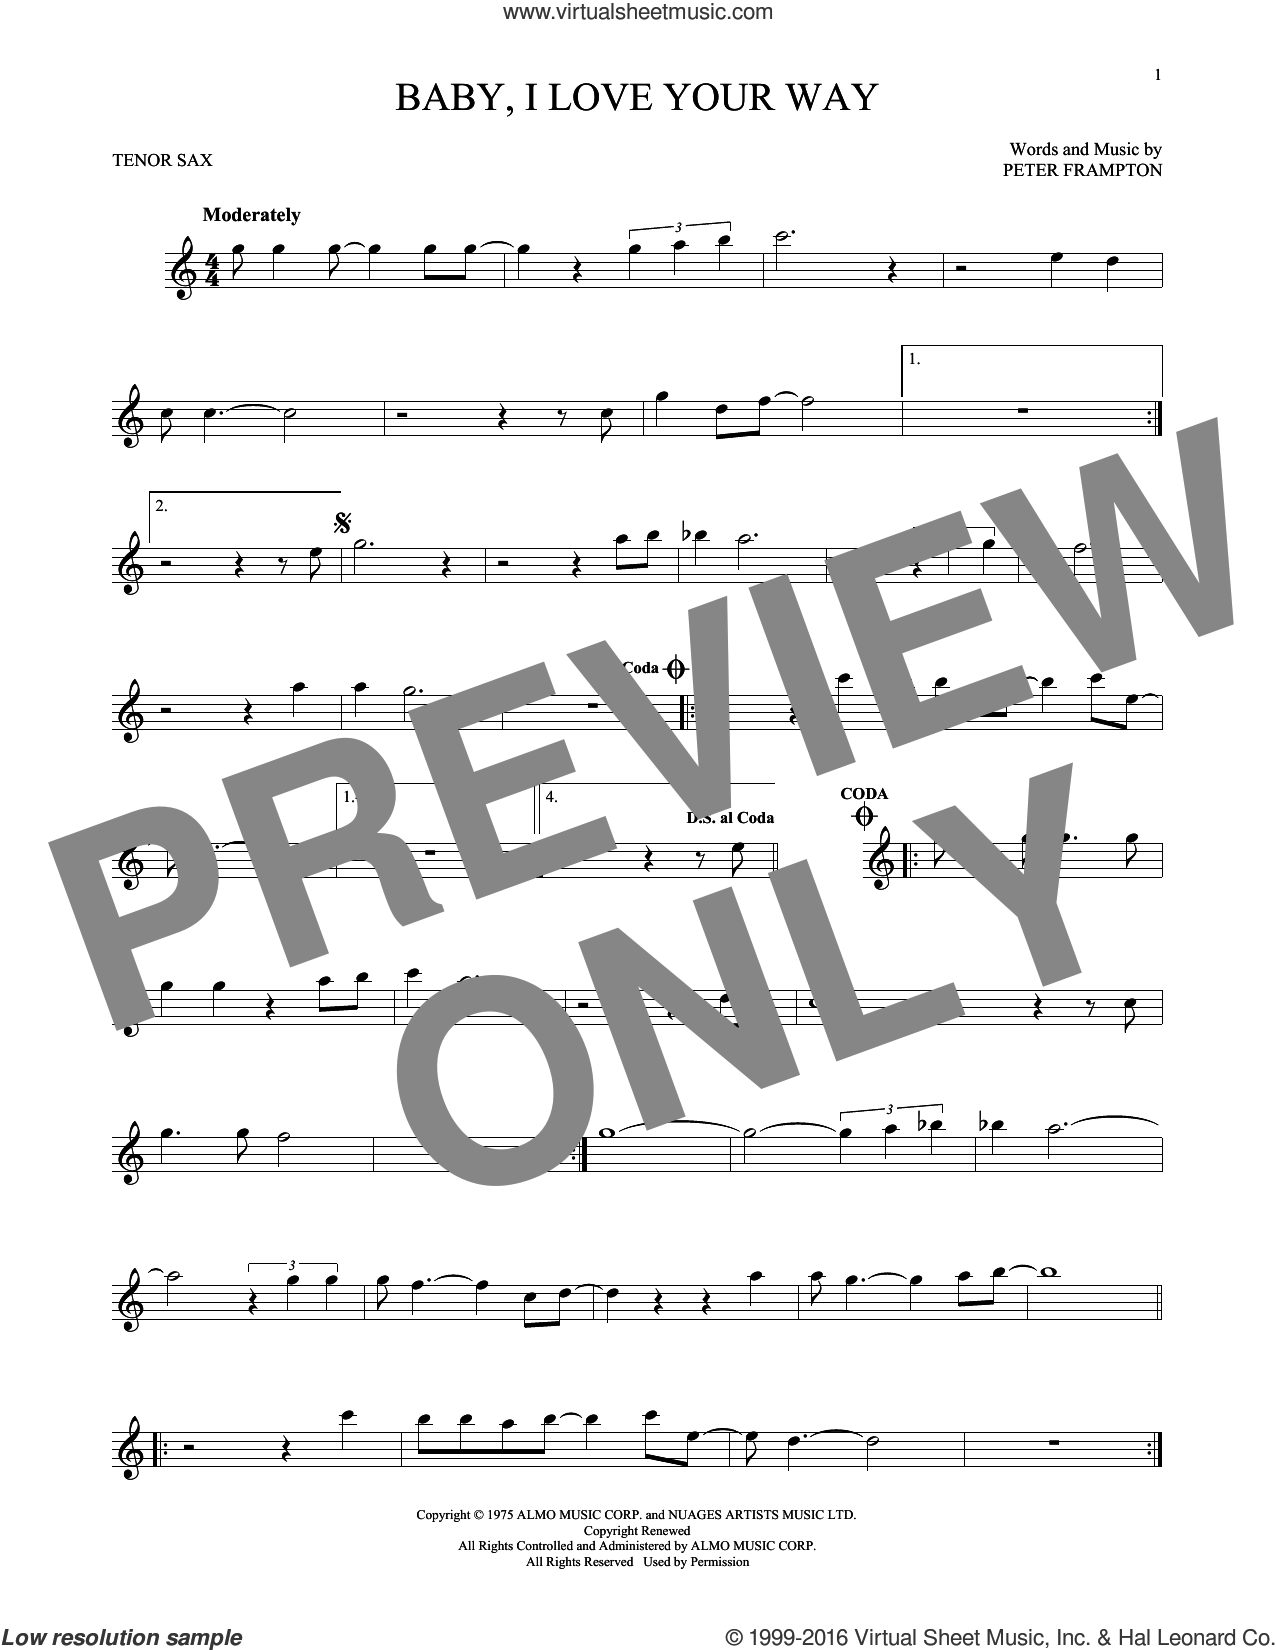 Baby, I Love Your Way sheet music for tenor saxophone solo by Peter Frampton, intermediate skill level